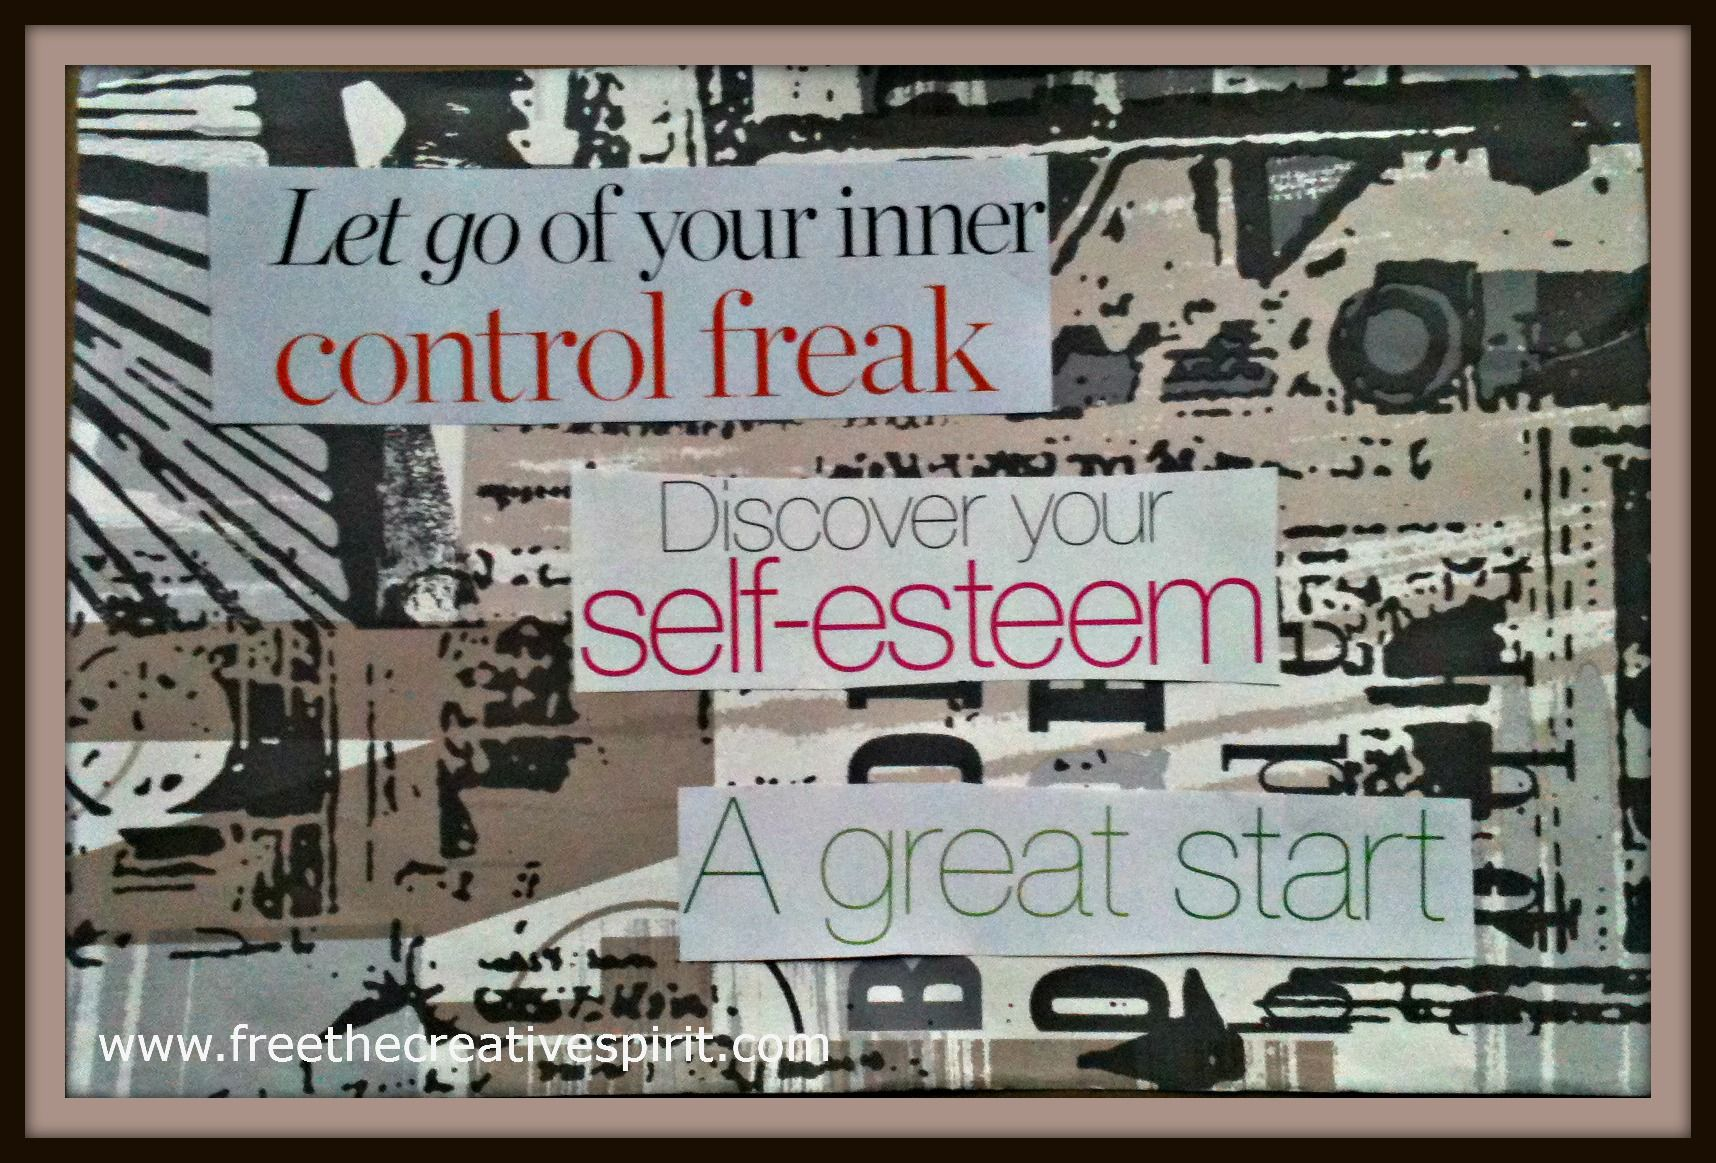 #10 Let go of your inner control freak.